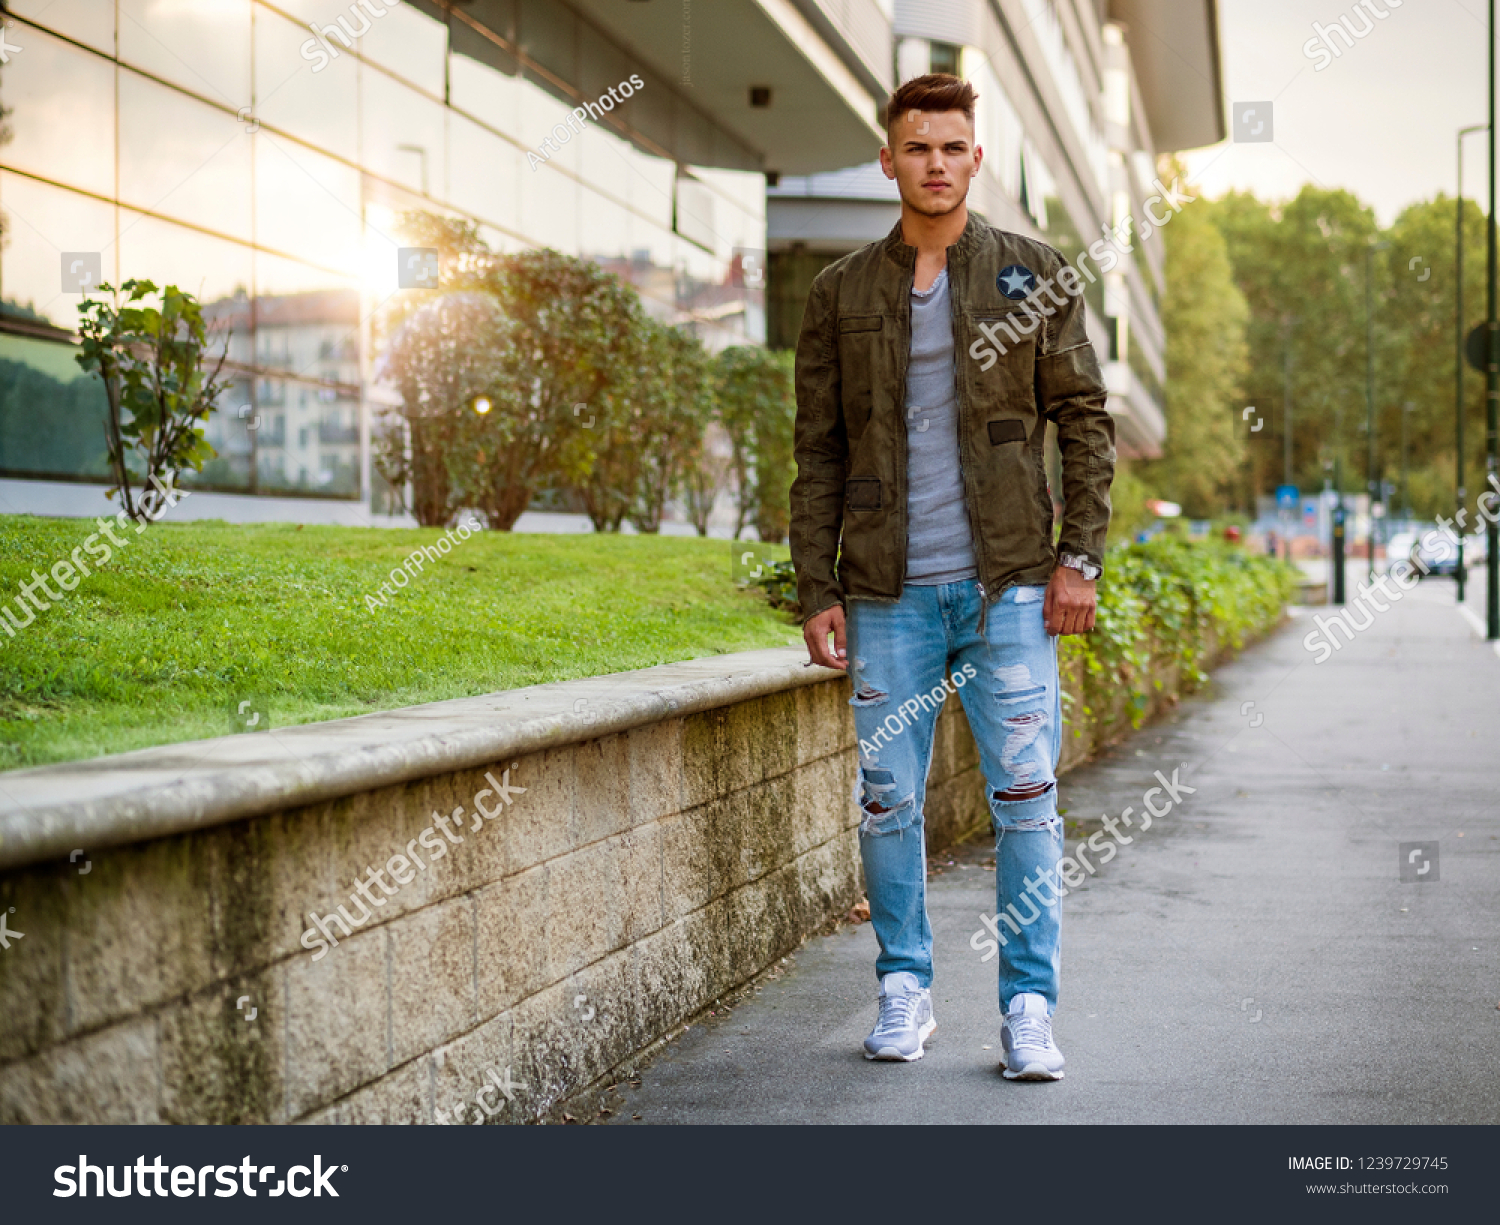 d67aa532 Handsome young man walking in city with backpack on shoulders, wearing t- shirt